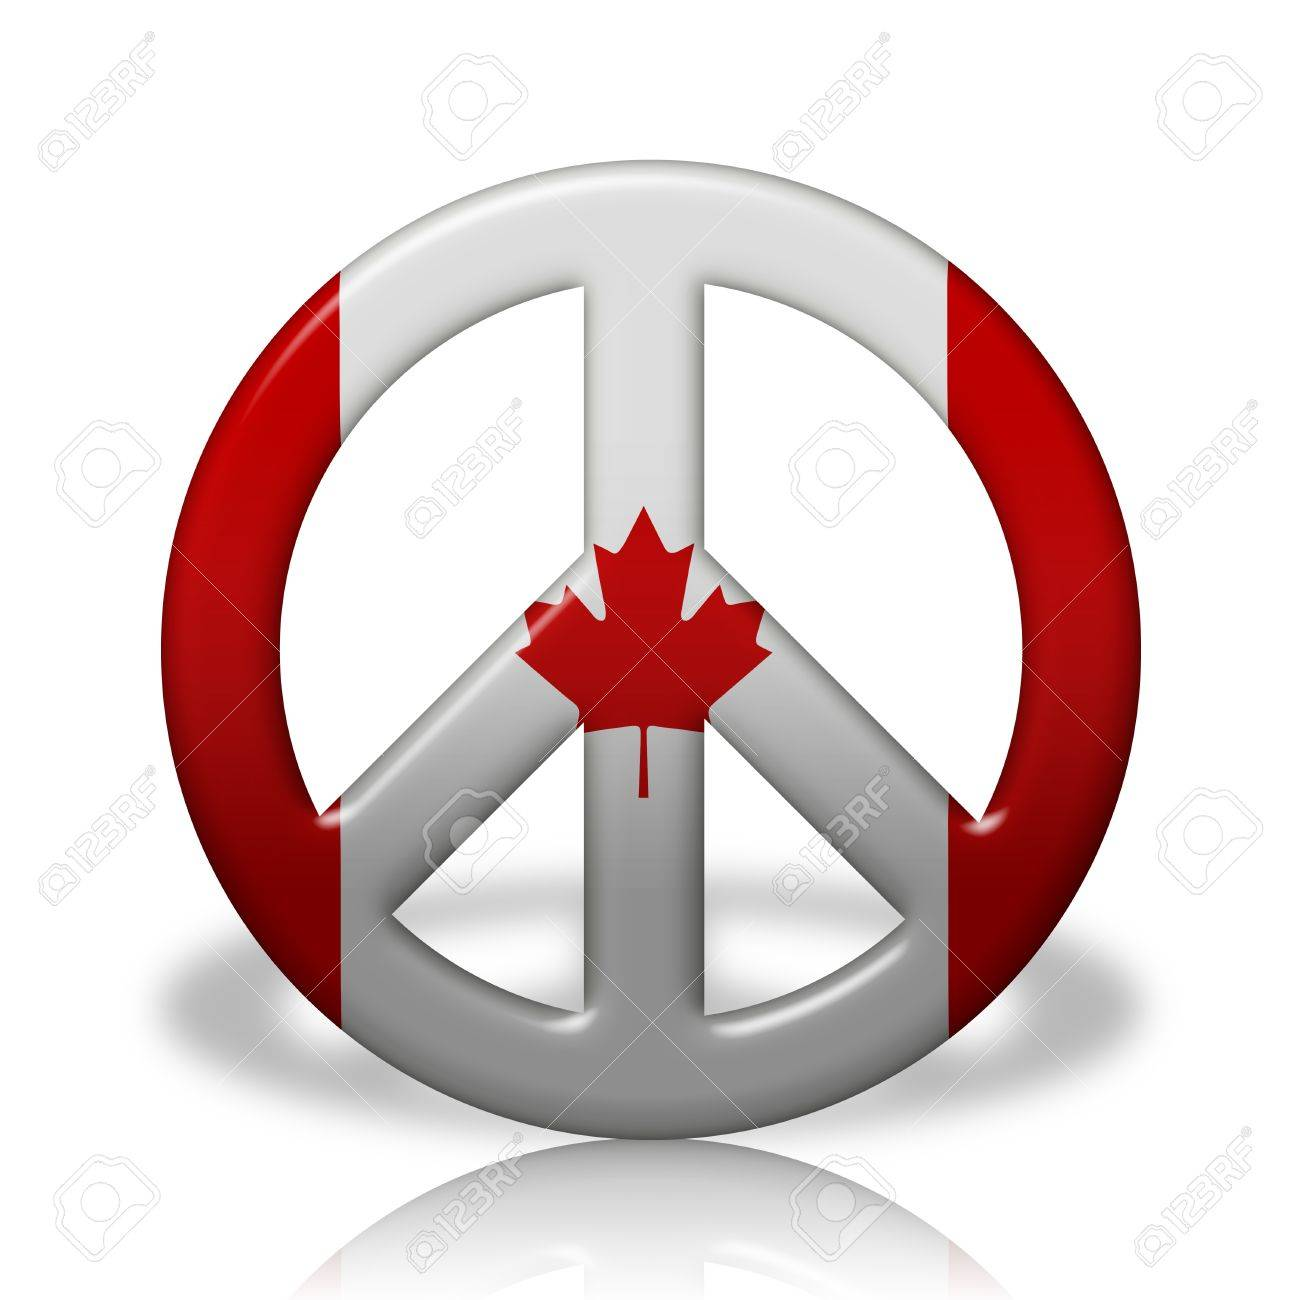 A peace sign symbol in 3d flag colors of canada peace in canada a peace sign symbol in 3d flag colors of canada peace in canada stock photo biocorpaavc